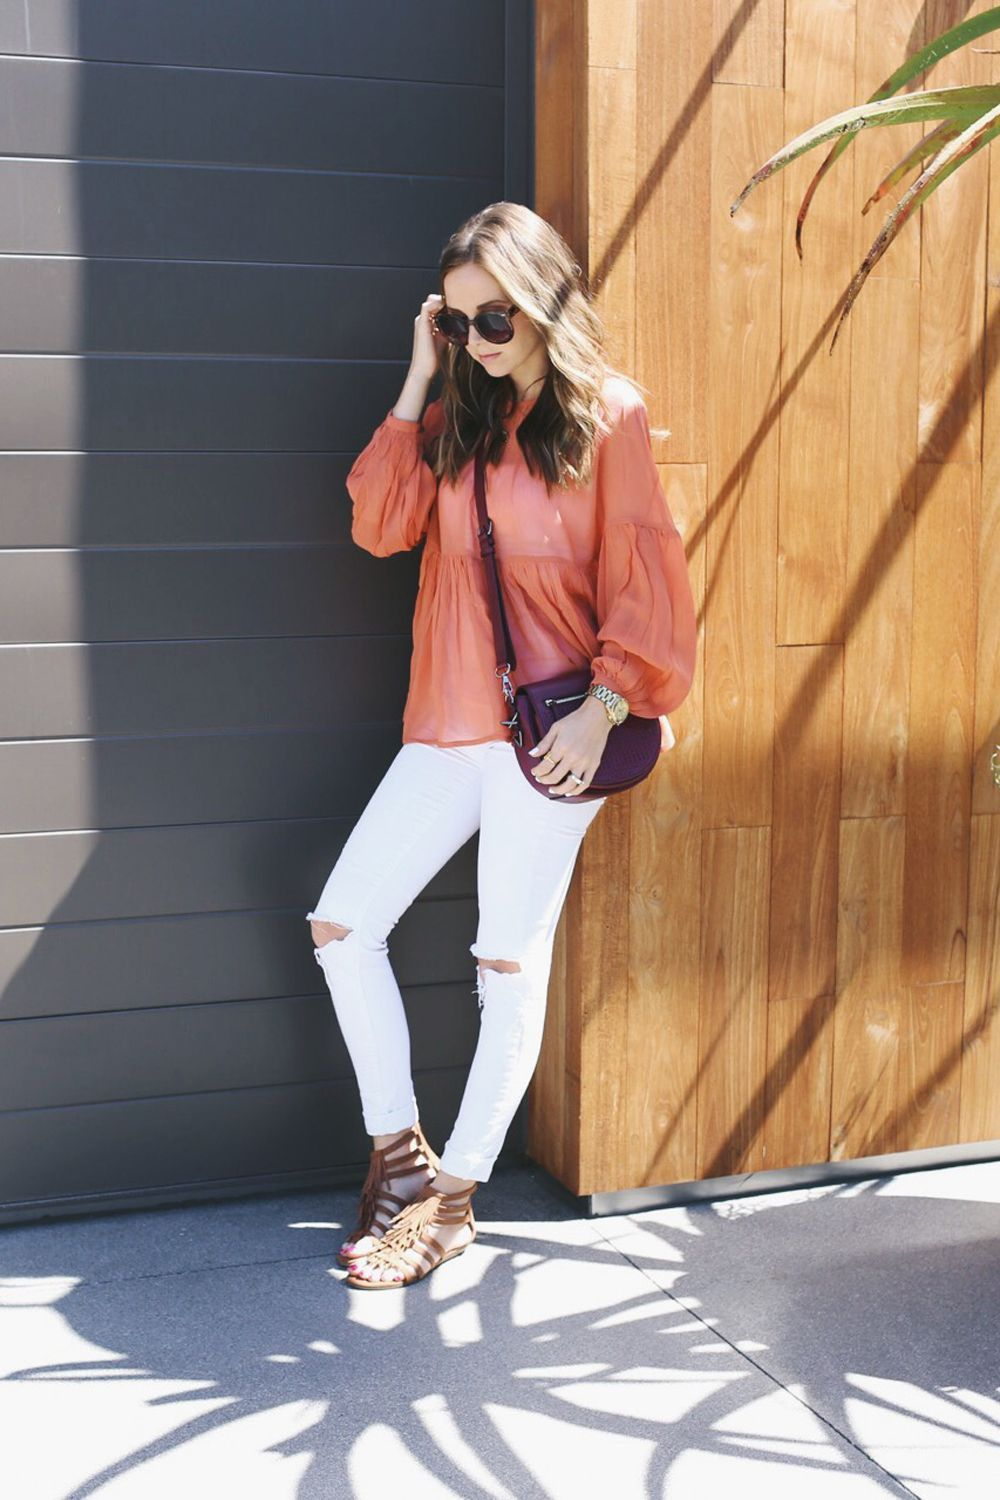 How To Style White Jeans For Winter | White jeans, Outfit